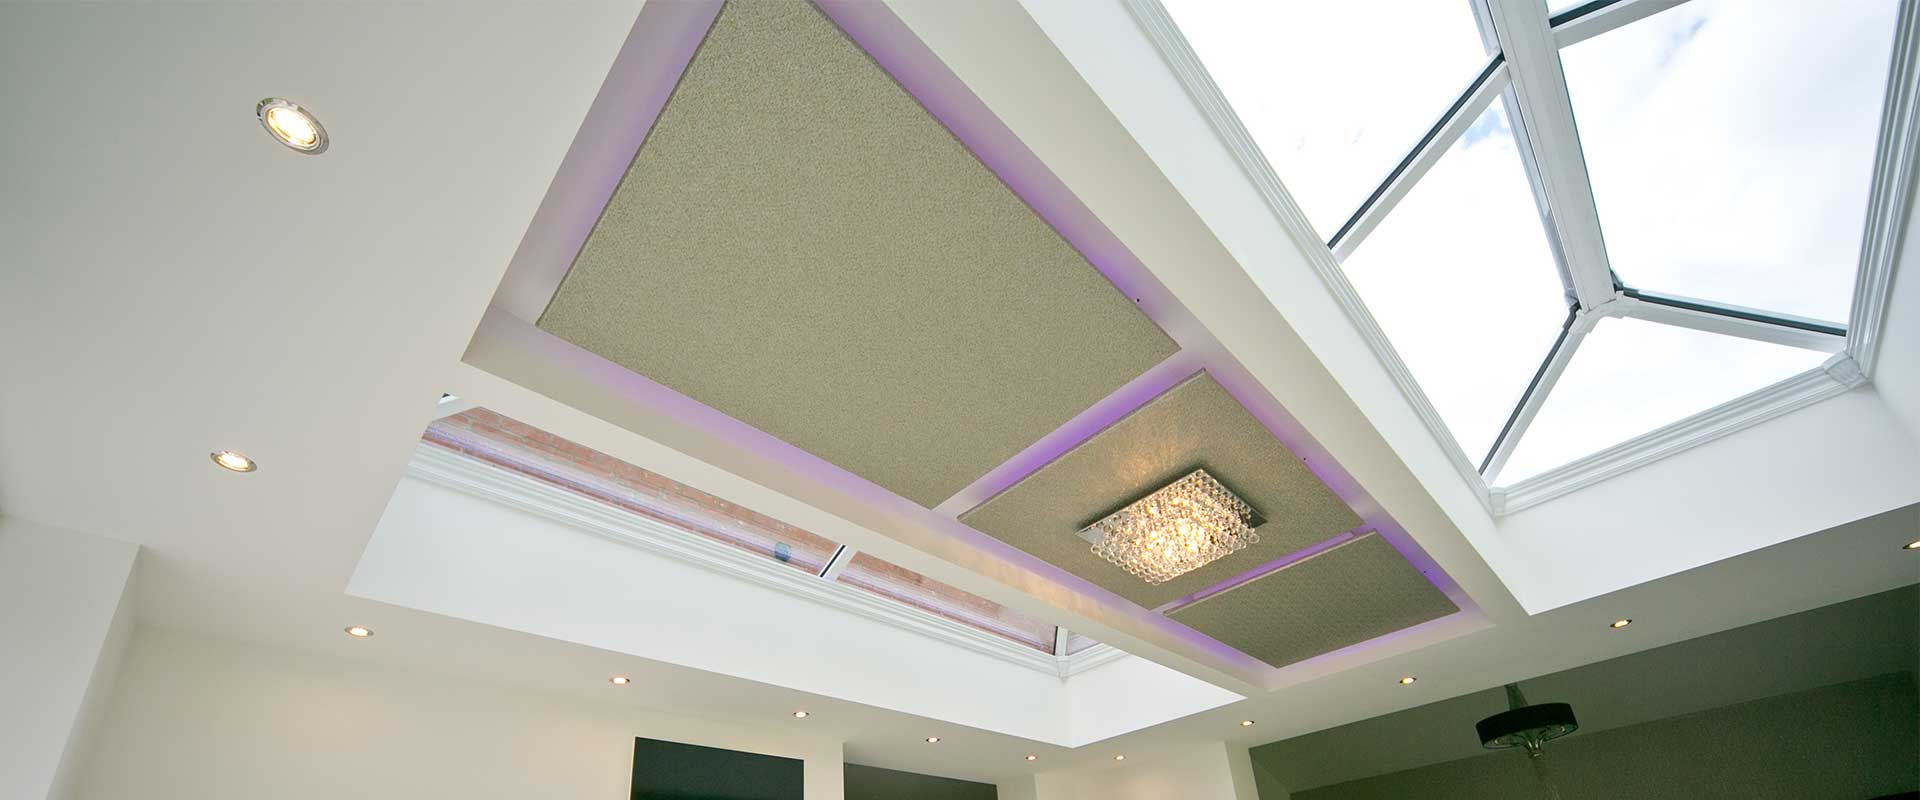 roof lanterns sutton